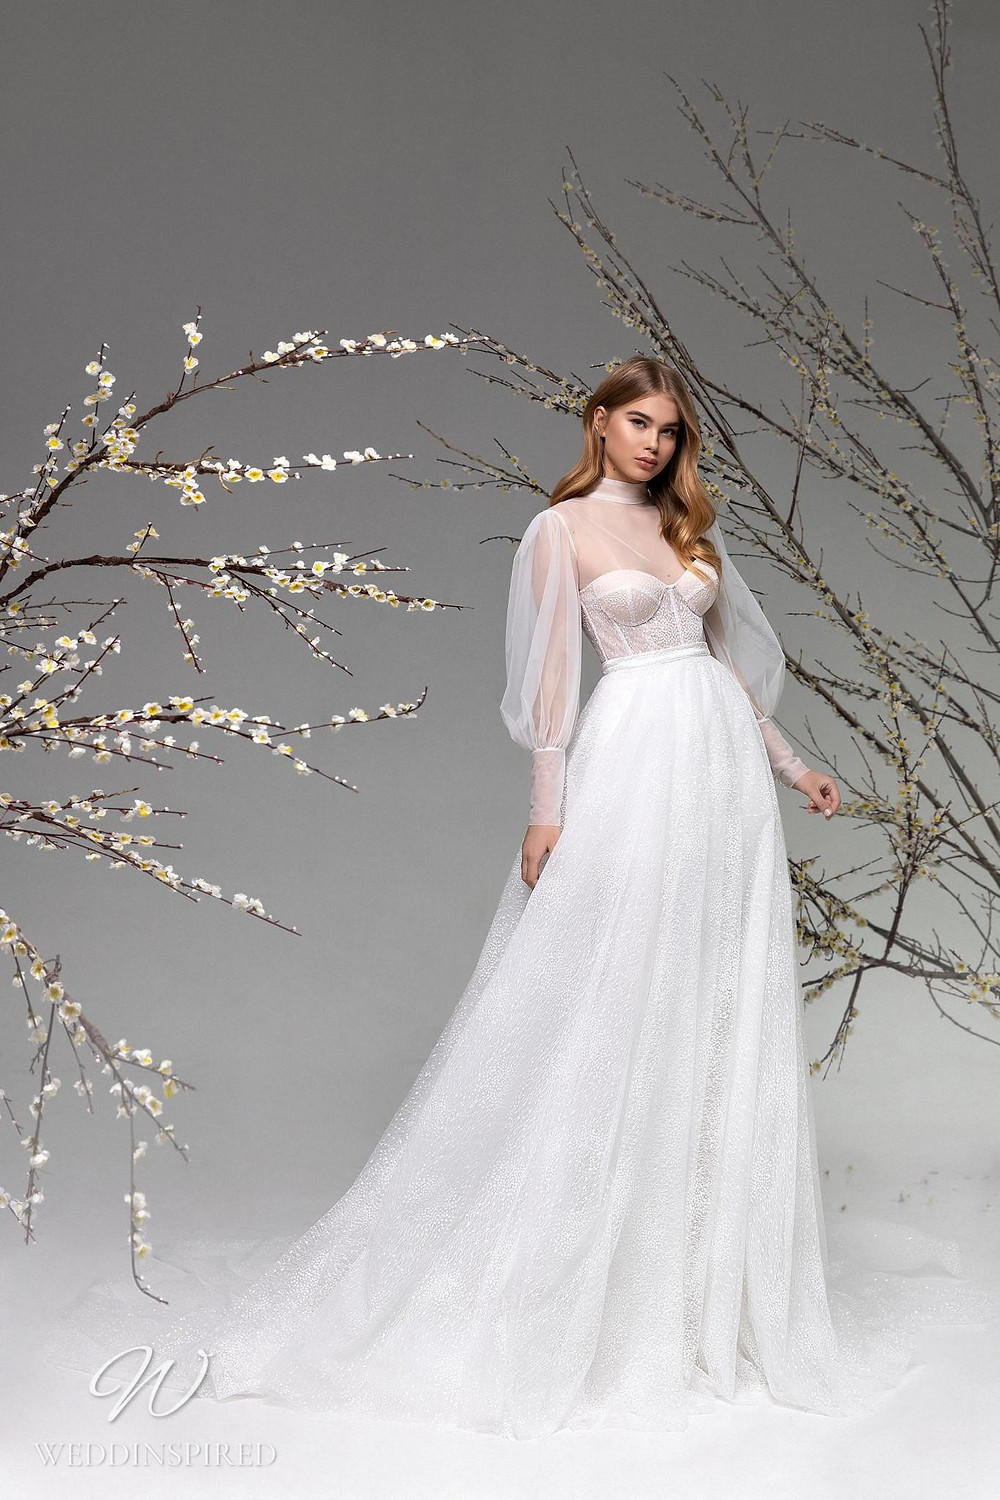 A Ricca Sposa mesh and tulle A-line wedding dress with long sleeves